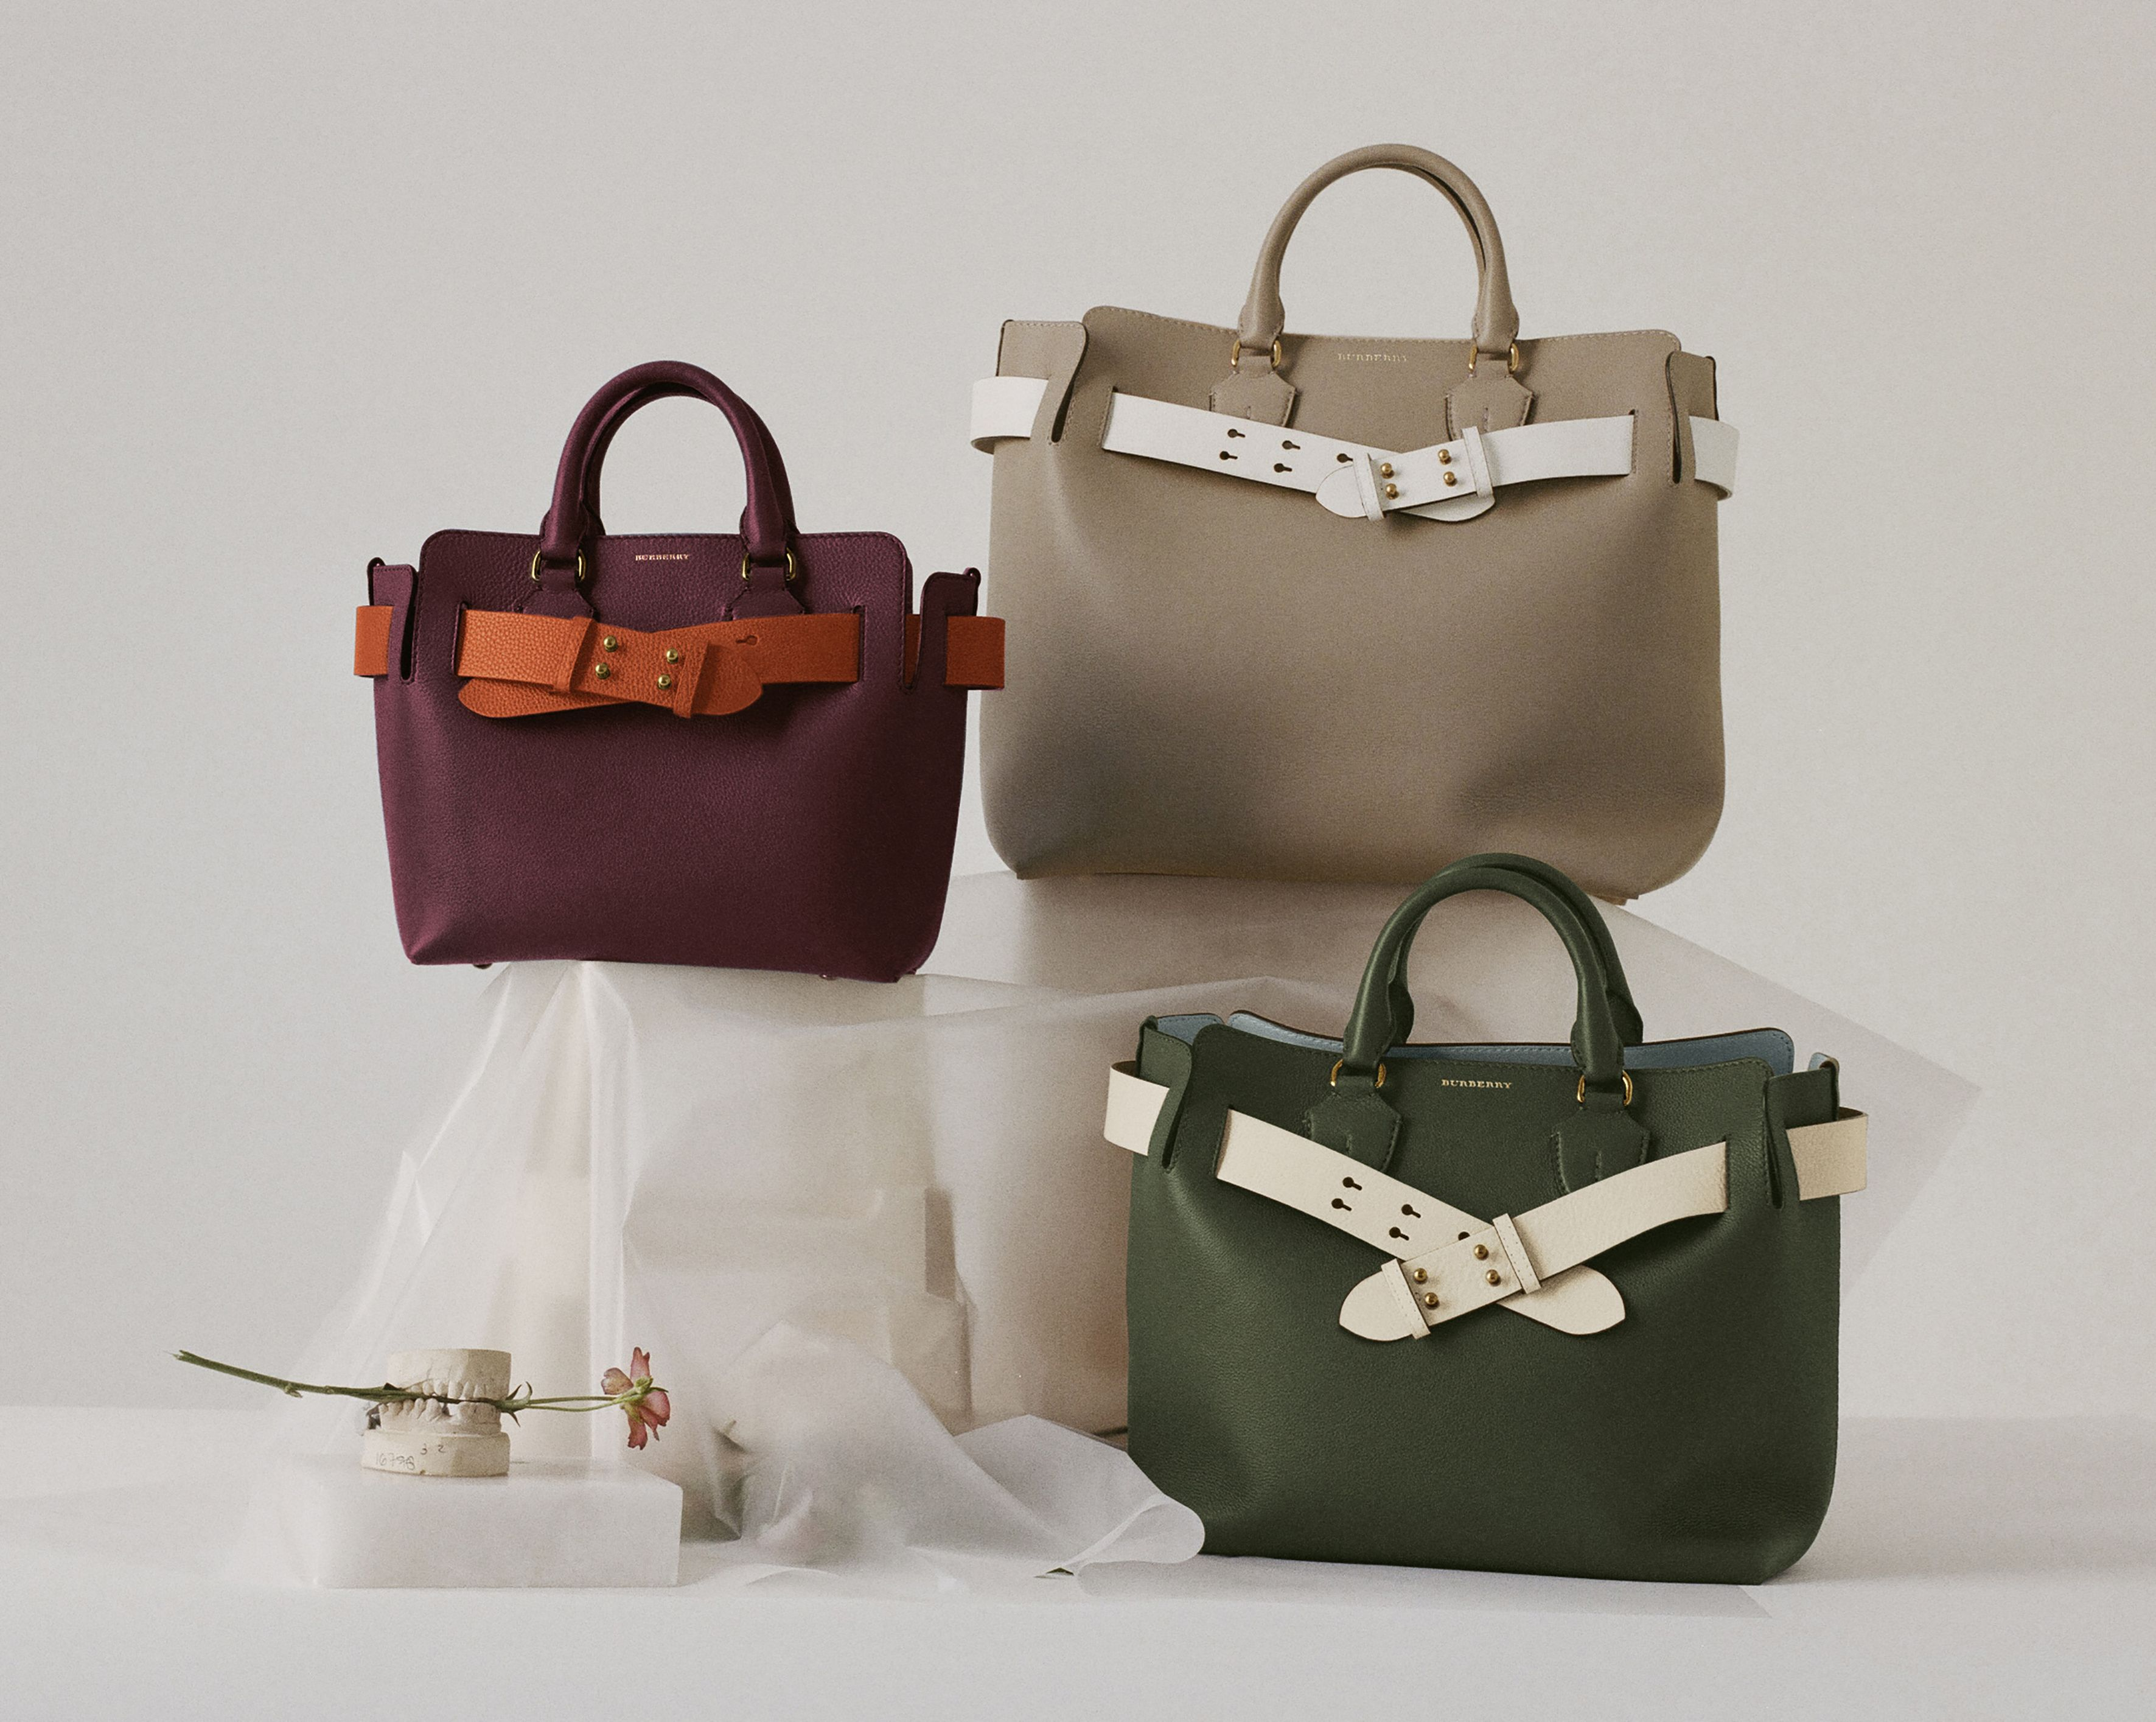 a3efd58a232b Discover the new Belt Bag Collection